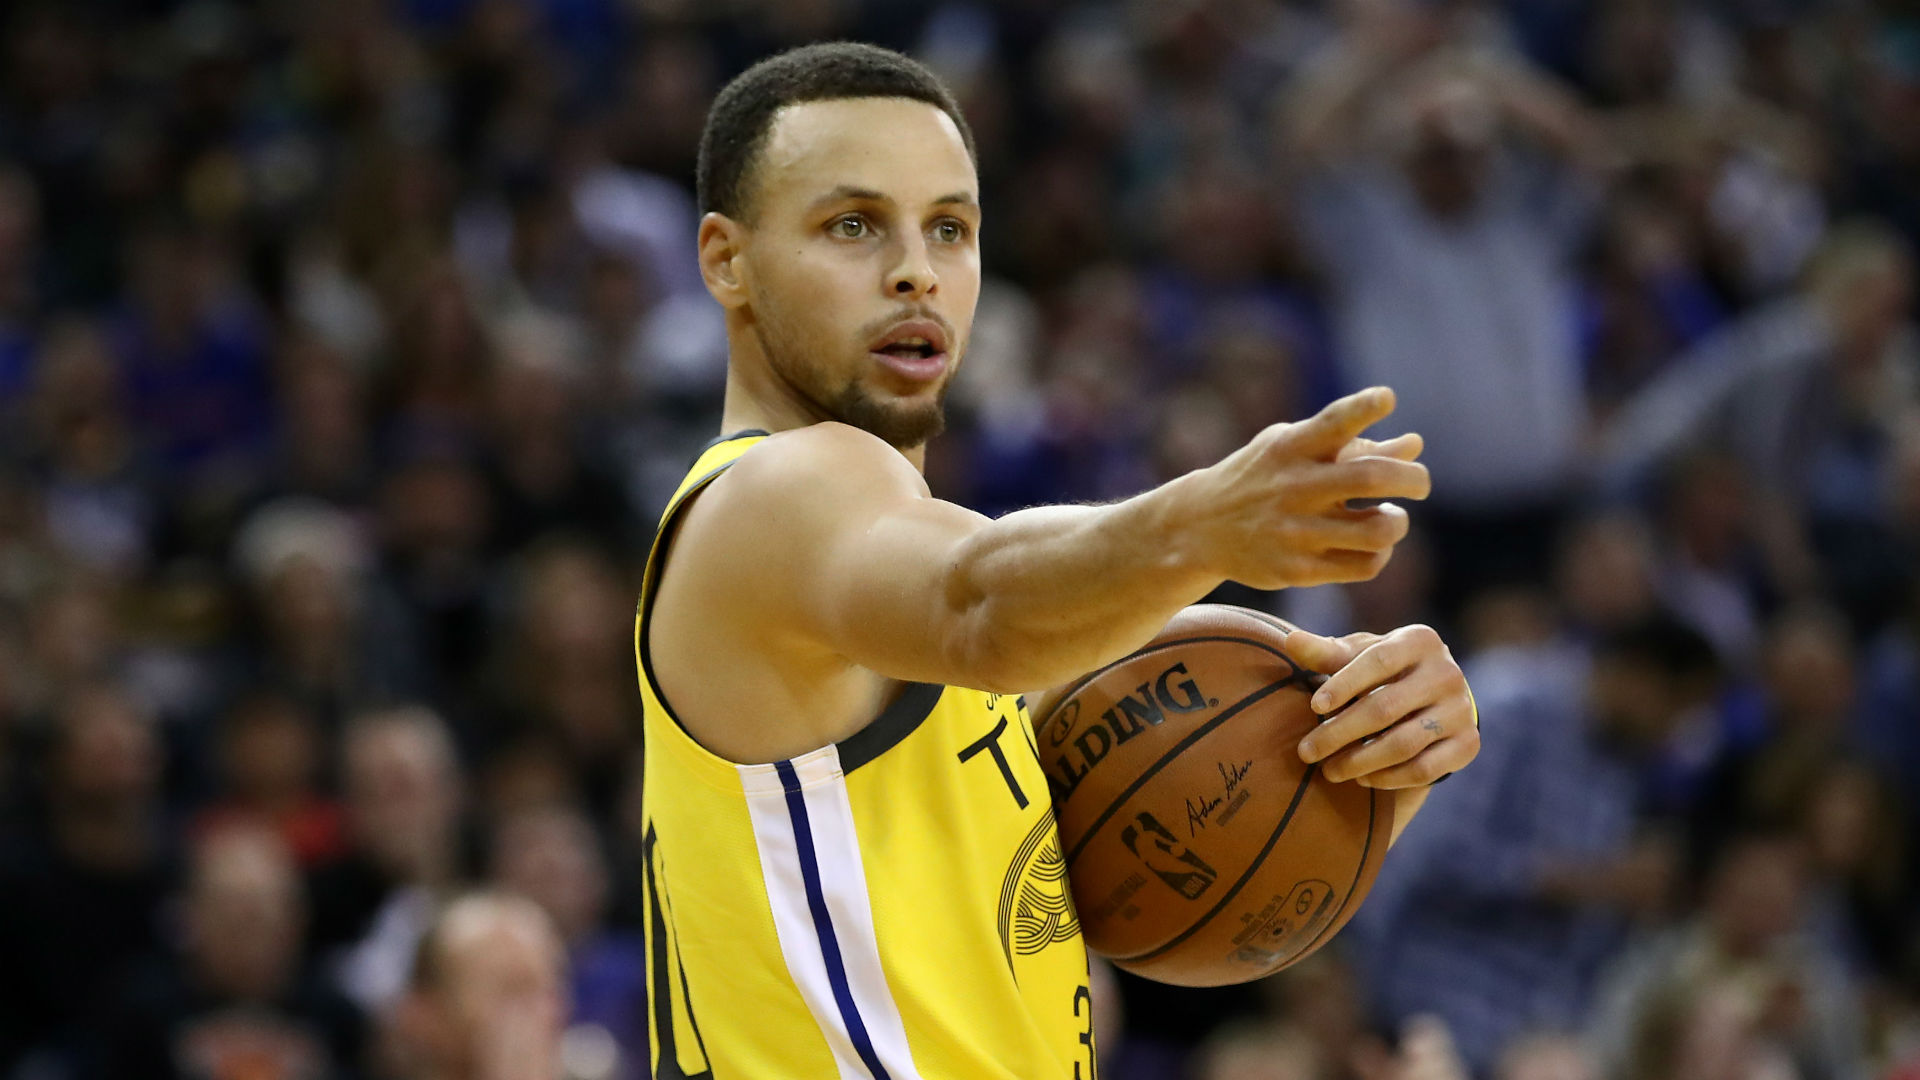 Only Reggie Miller and Ray Allen have hit more three-pointers in the NBA than Stephen Curry, who went third on the list on Friday.